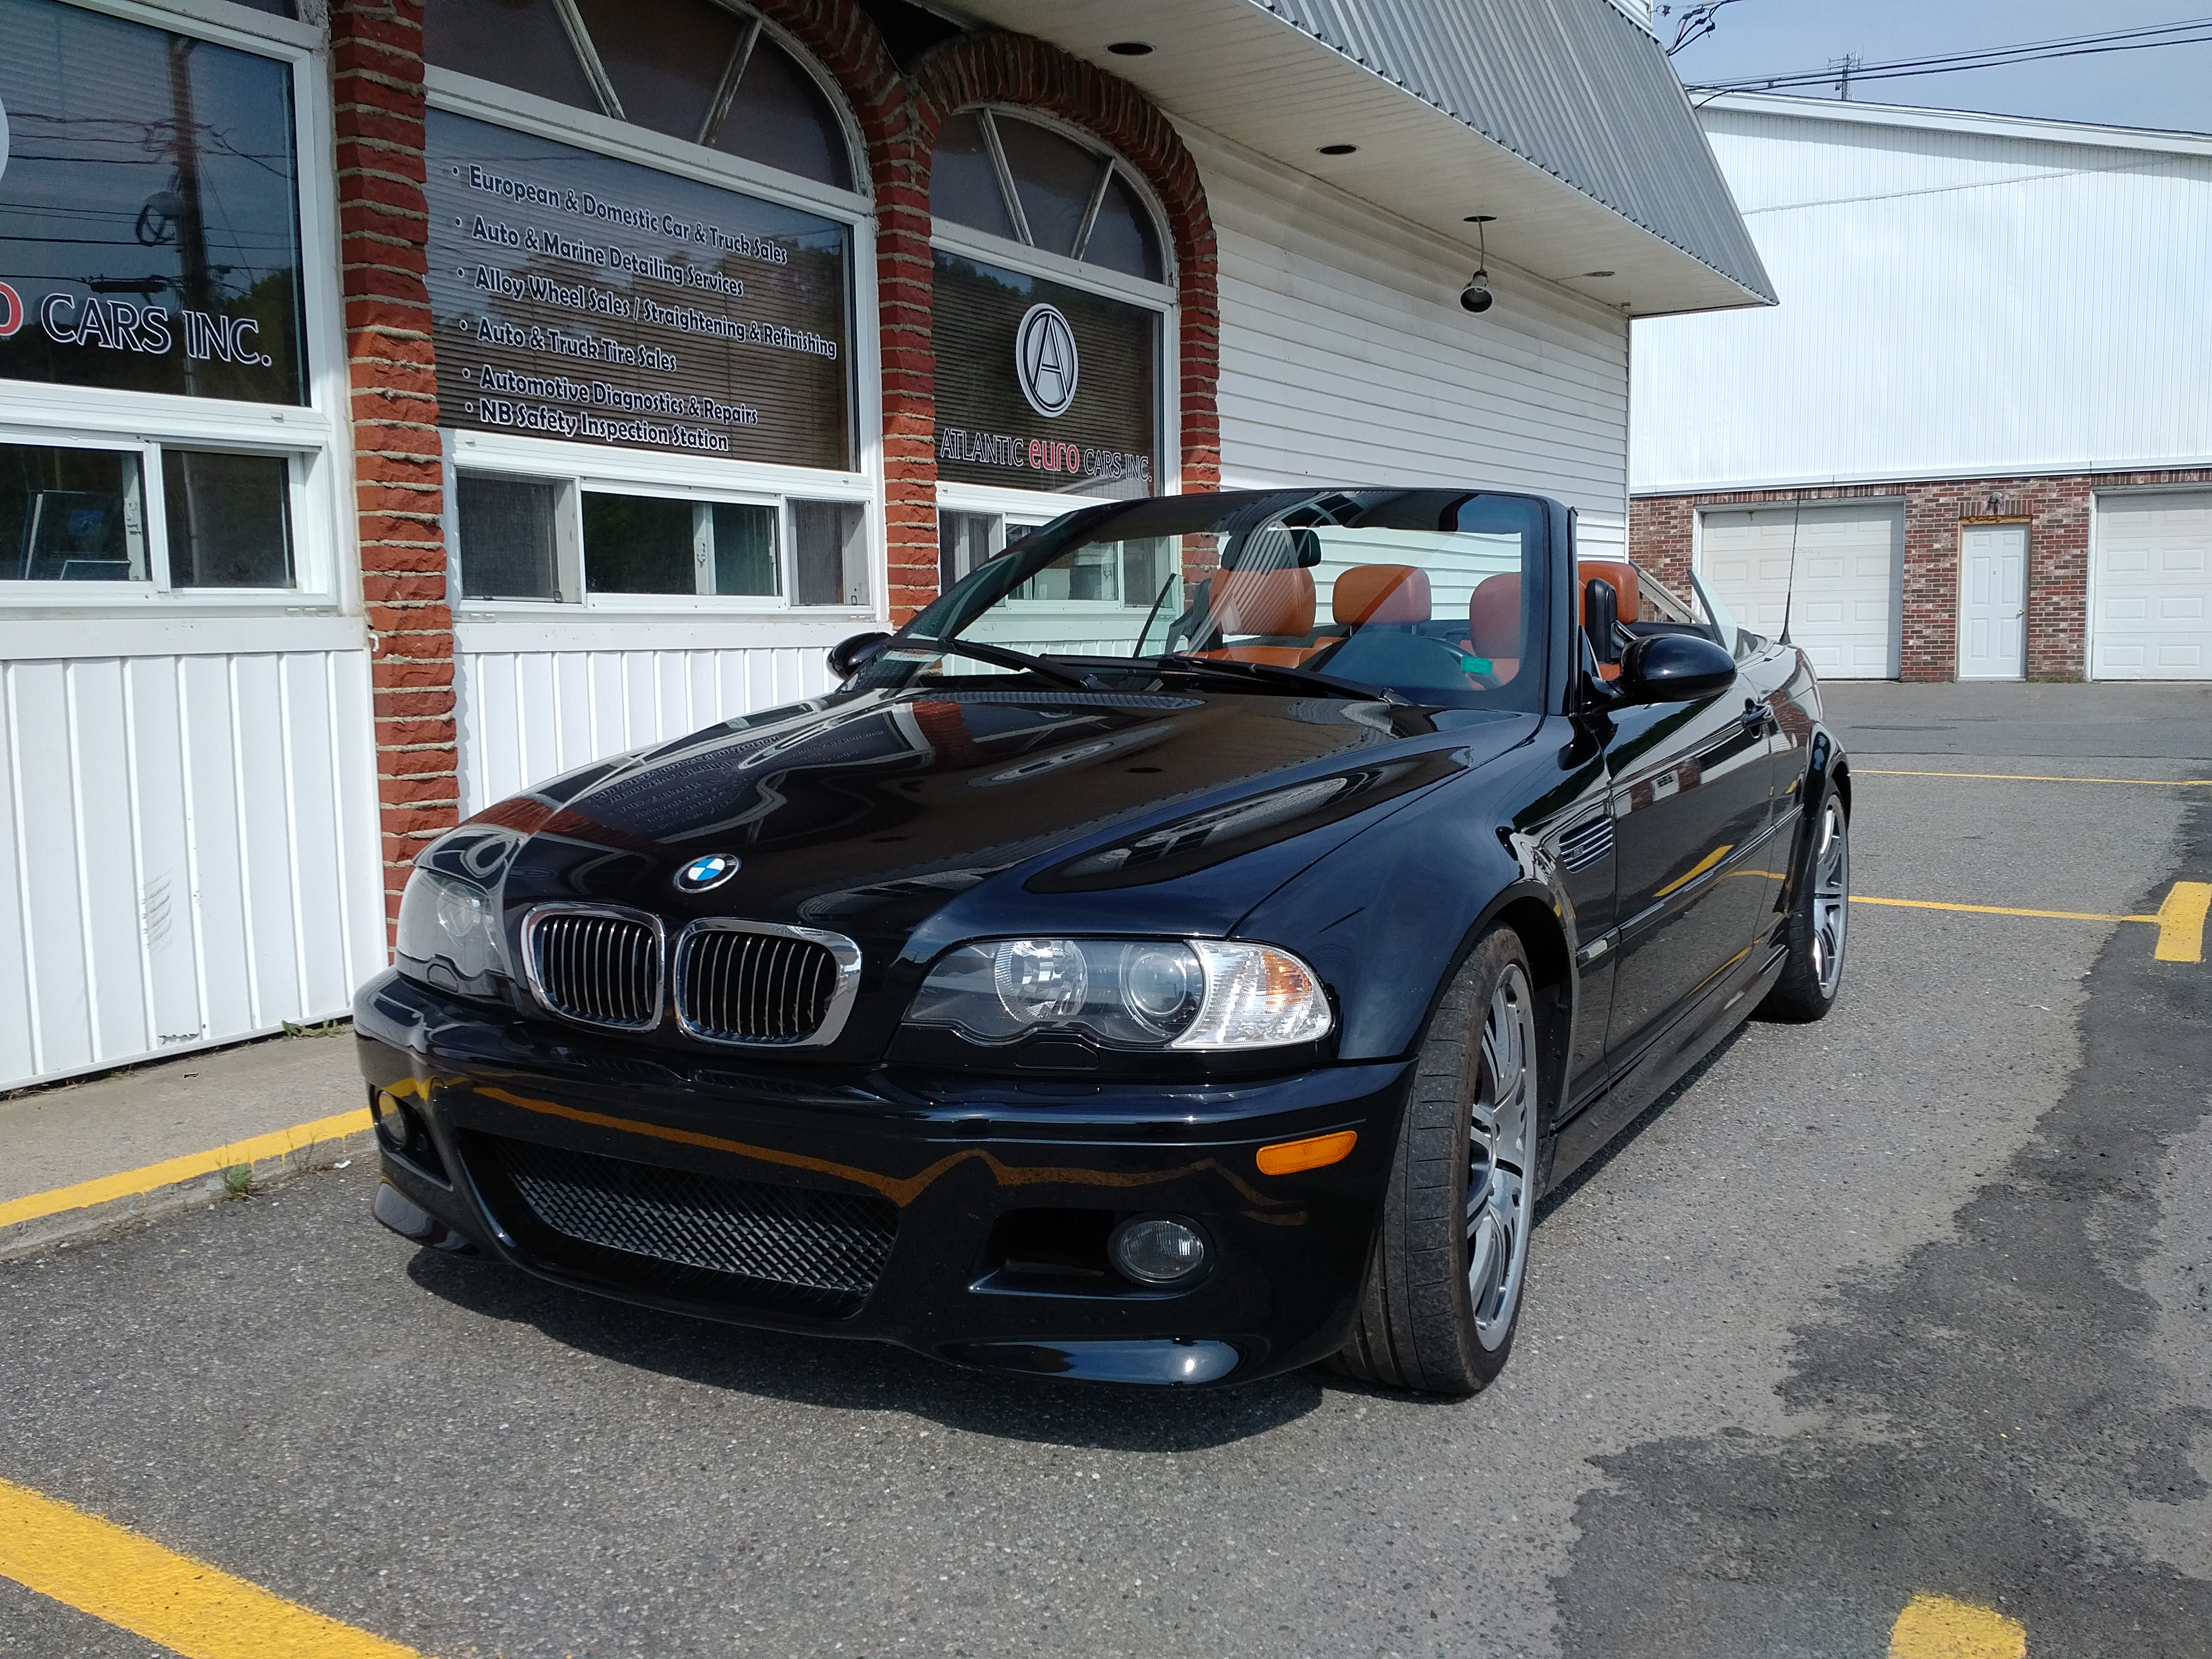 bmw has sale car showthread stolen for smg forums was title but convertible it rebuilt recovered